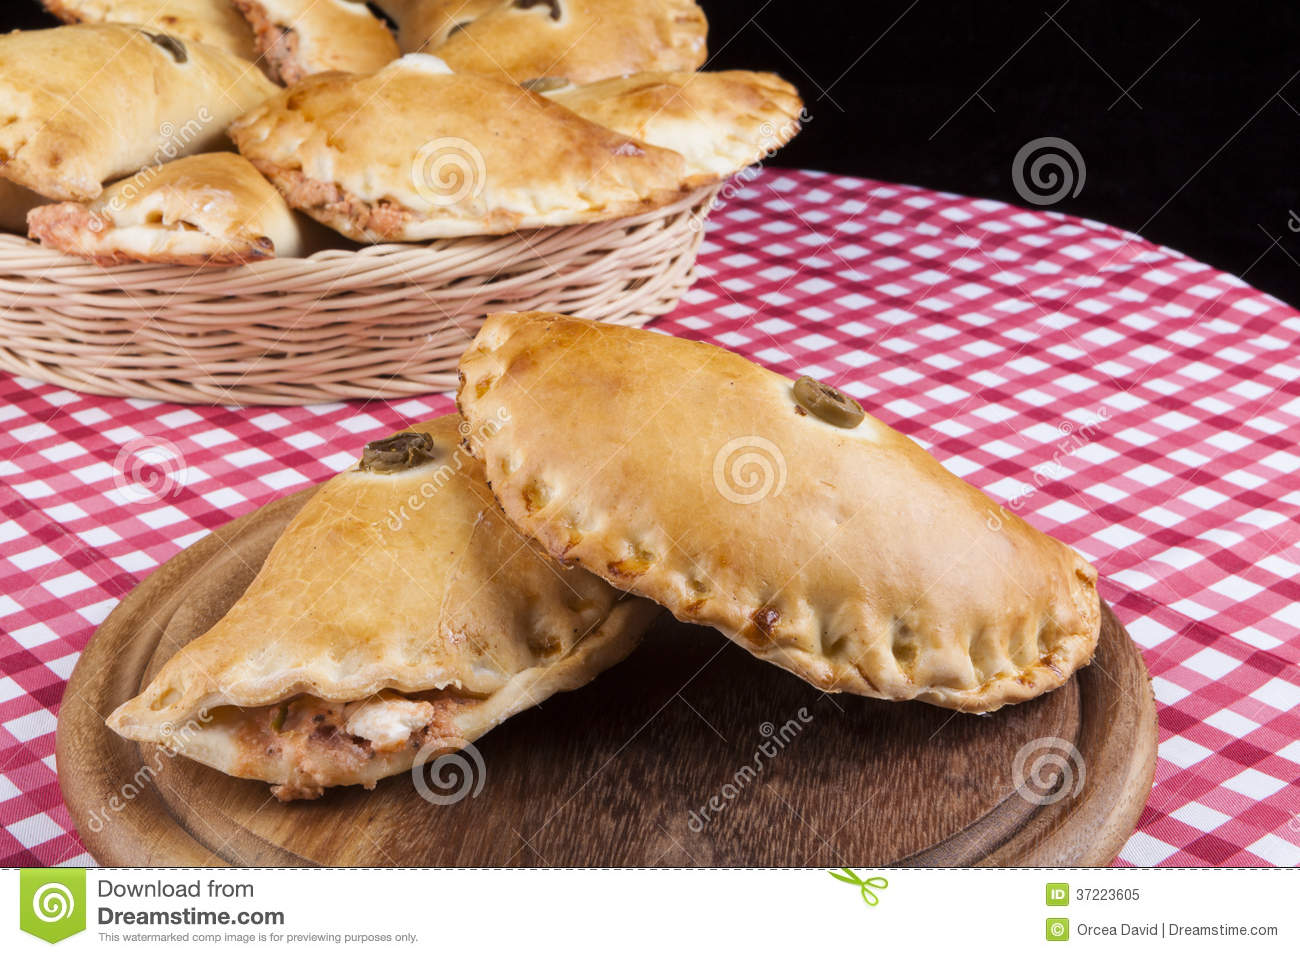 Pizza Filling Royalty Free Stock Photo - Image: 37223605